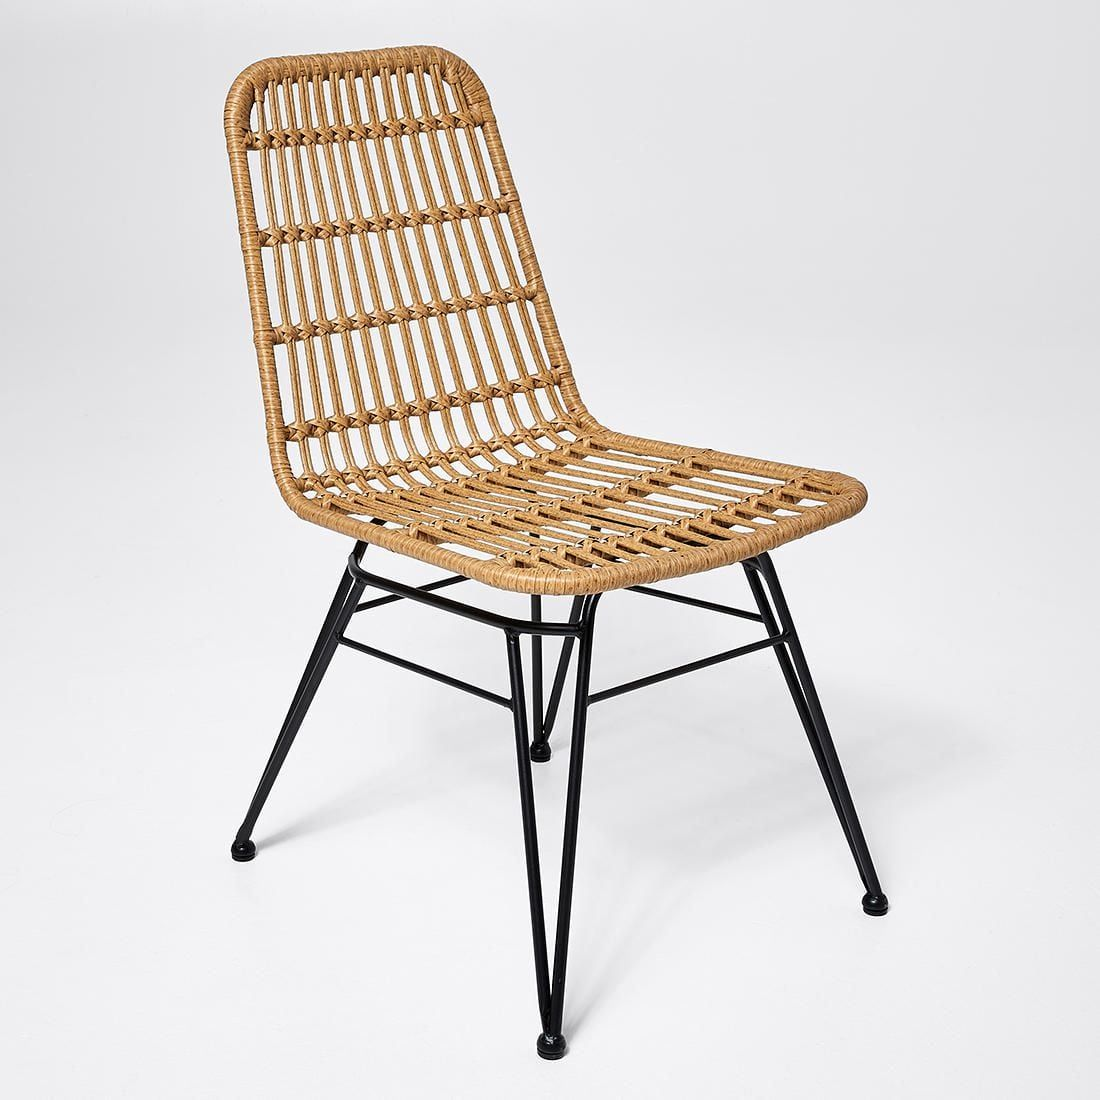 Woven Rattan Dining Chair | Rattan dining chairs, Woven ...